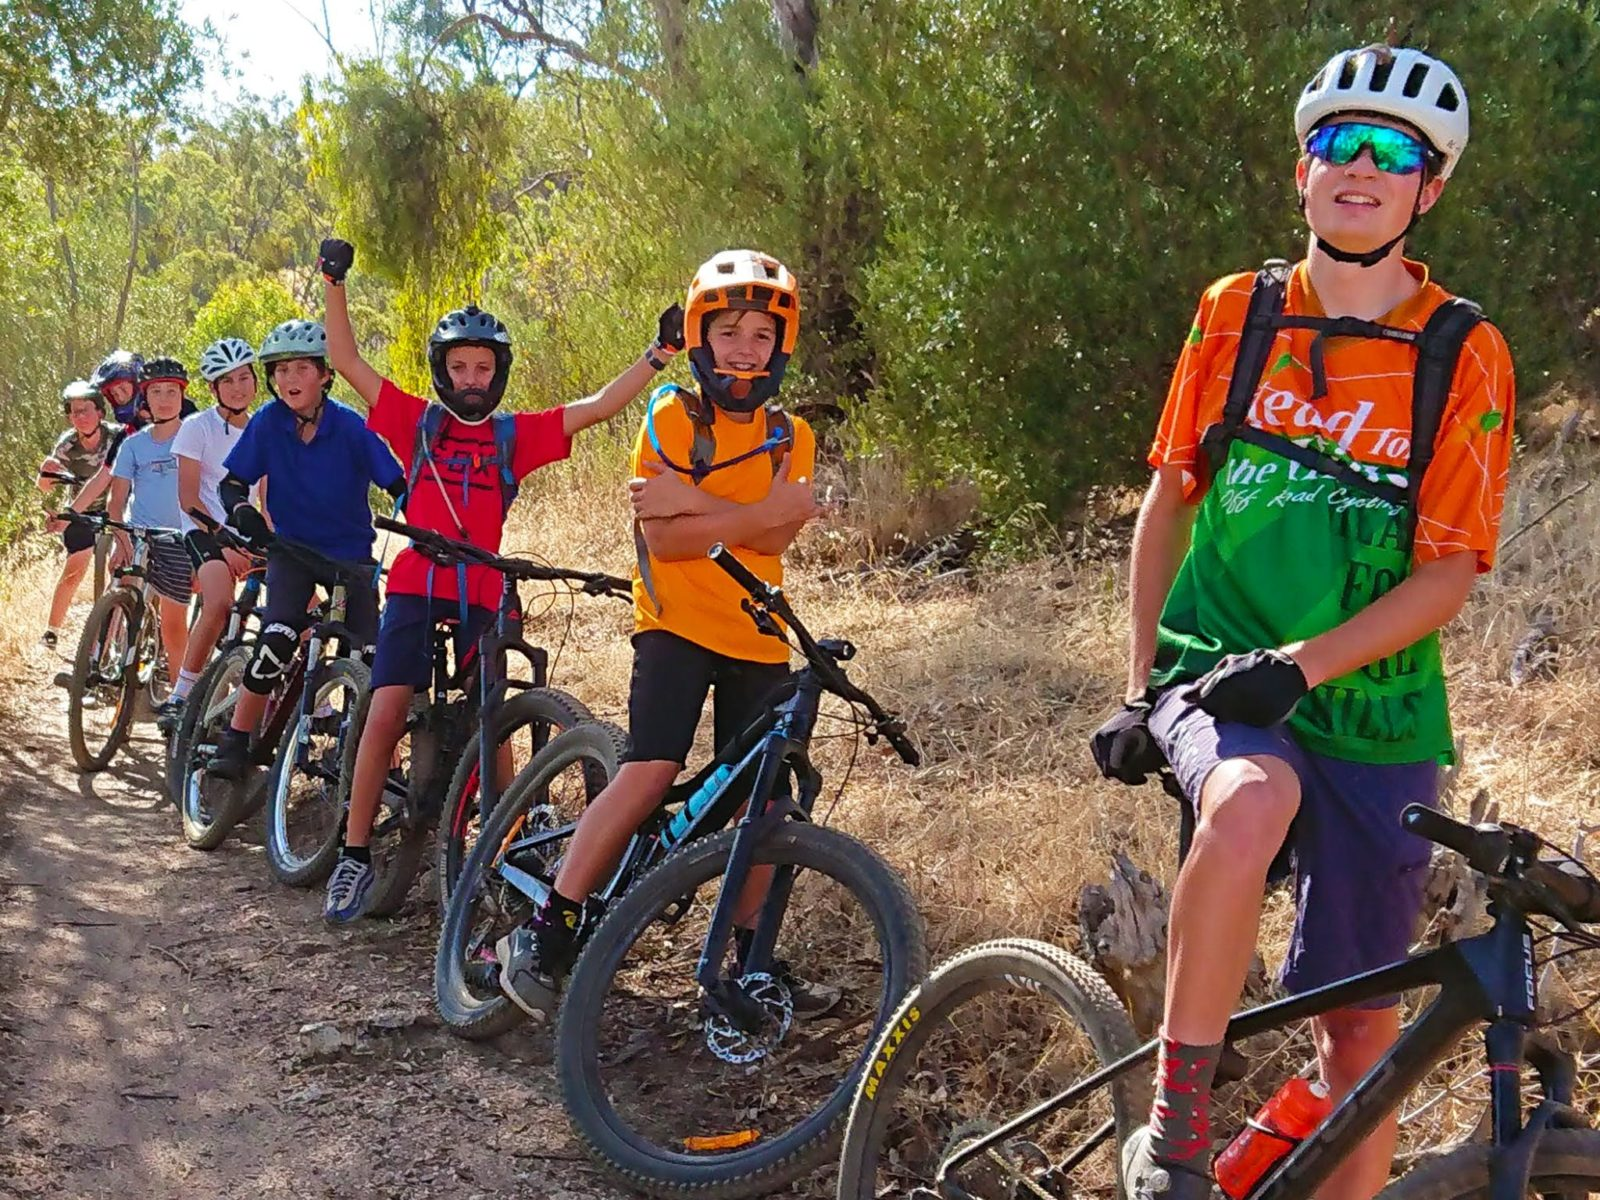 A group of mountain bikers on a trail